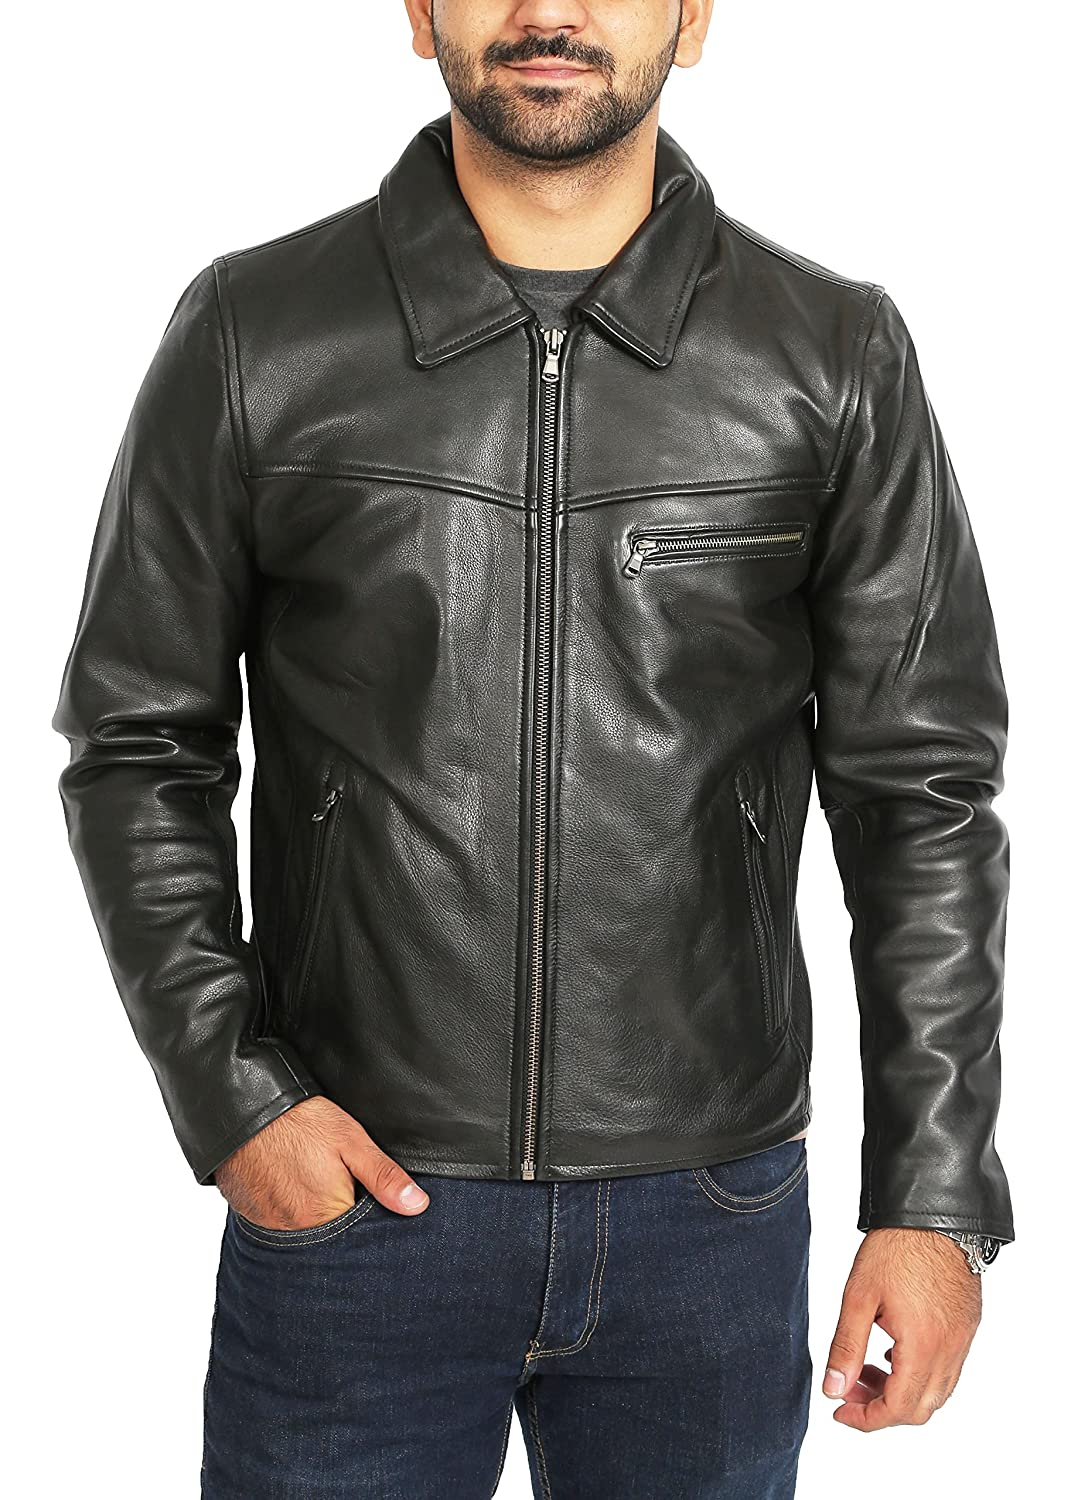 Mens Real Leather Jacket Black Heavy Duty Full Grain Zip Box Classic Coat Clint House Of Leather